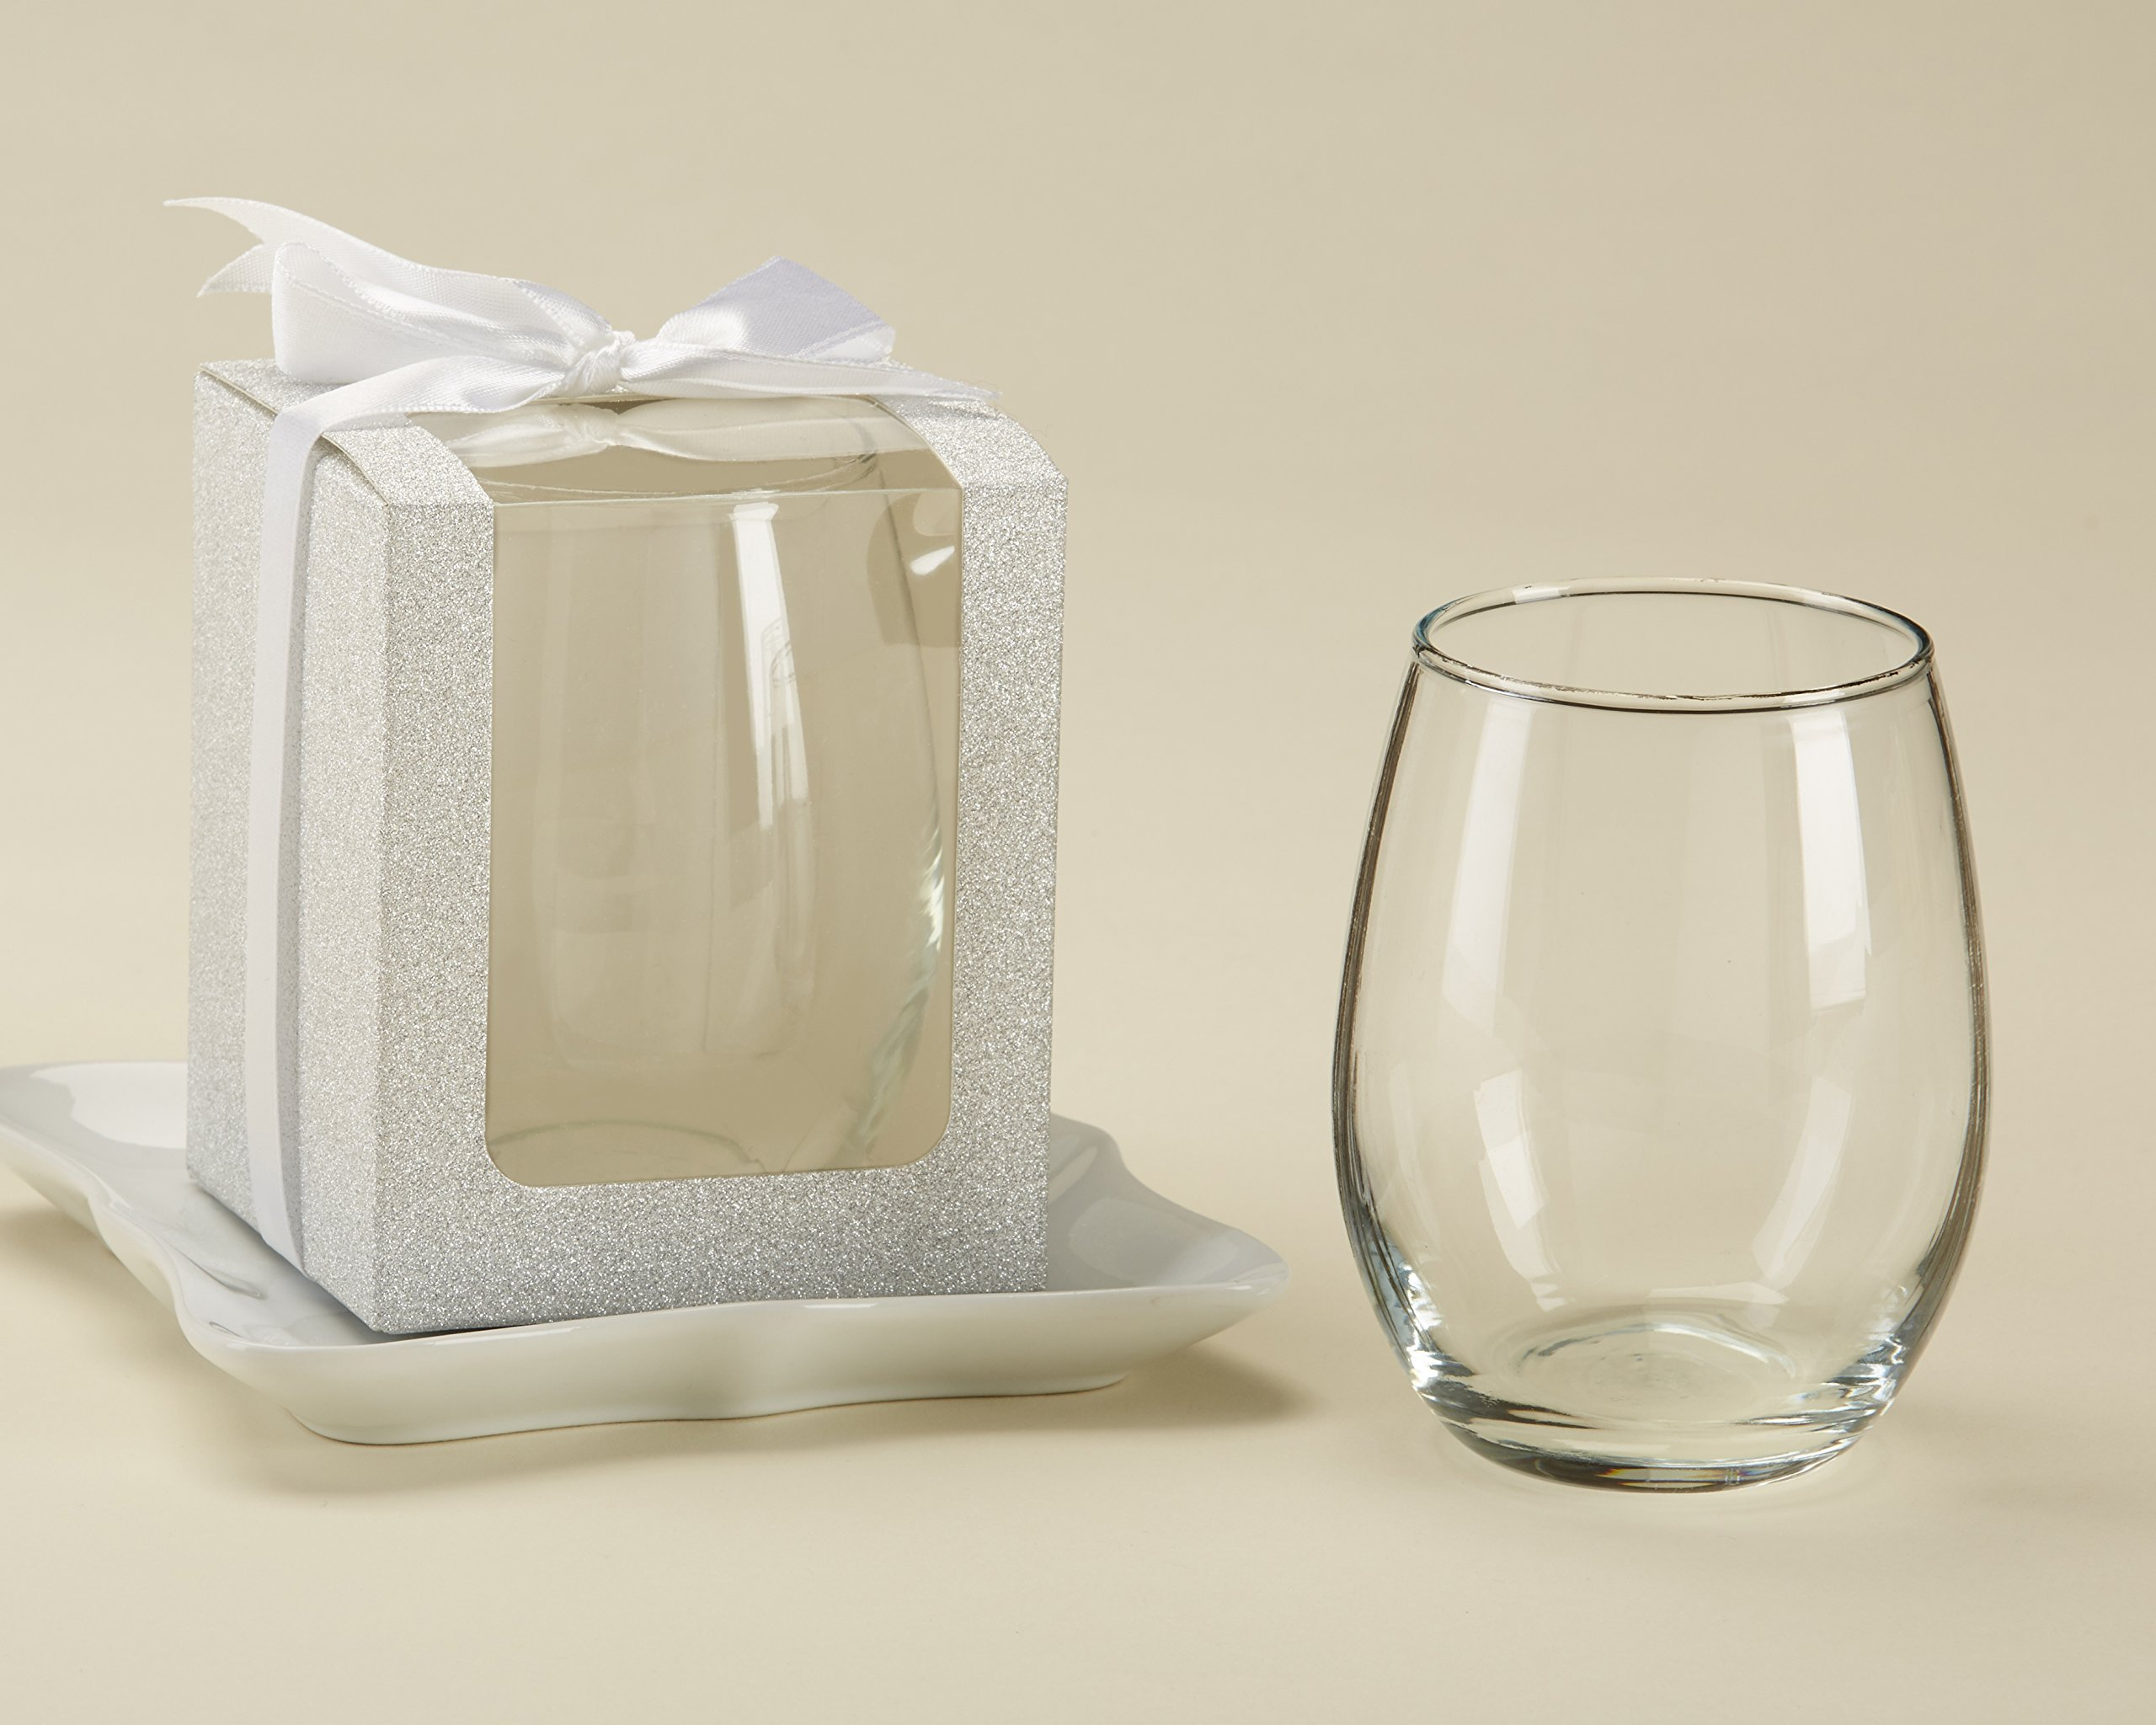 Kate Aspen Silver Shimmer Display/Gift/Favor Box, Wedding/Party Decoration, can Hold 9 oz. Stemless Wine Glasses  (Set of 12)